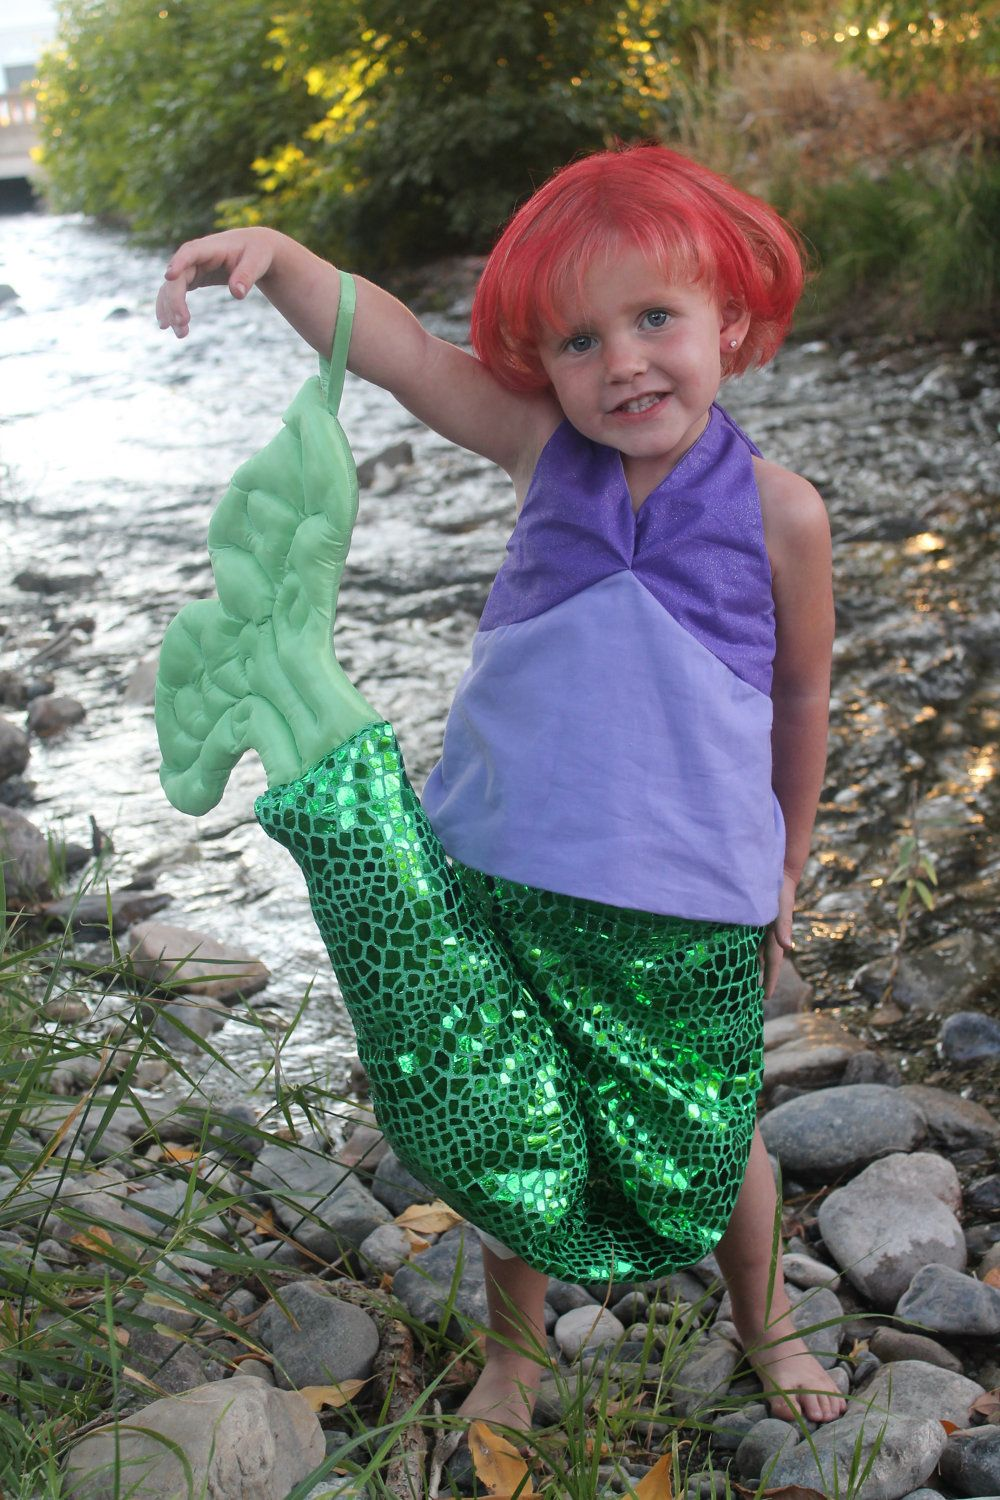 Little Mermaid Princess Ariel Mermaid princess, The